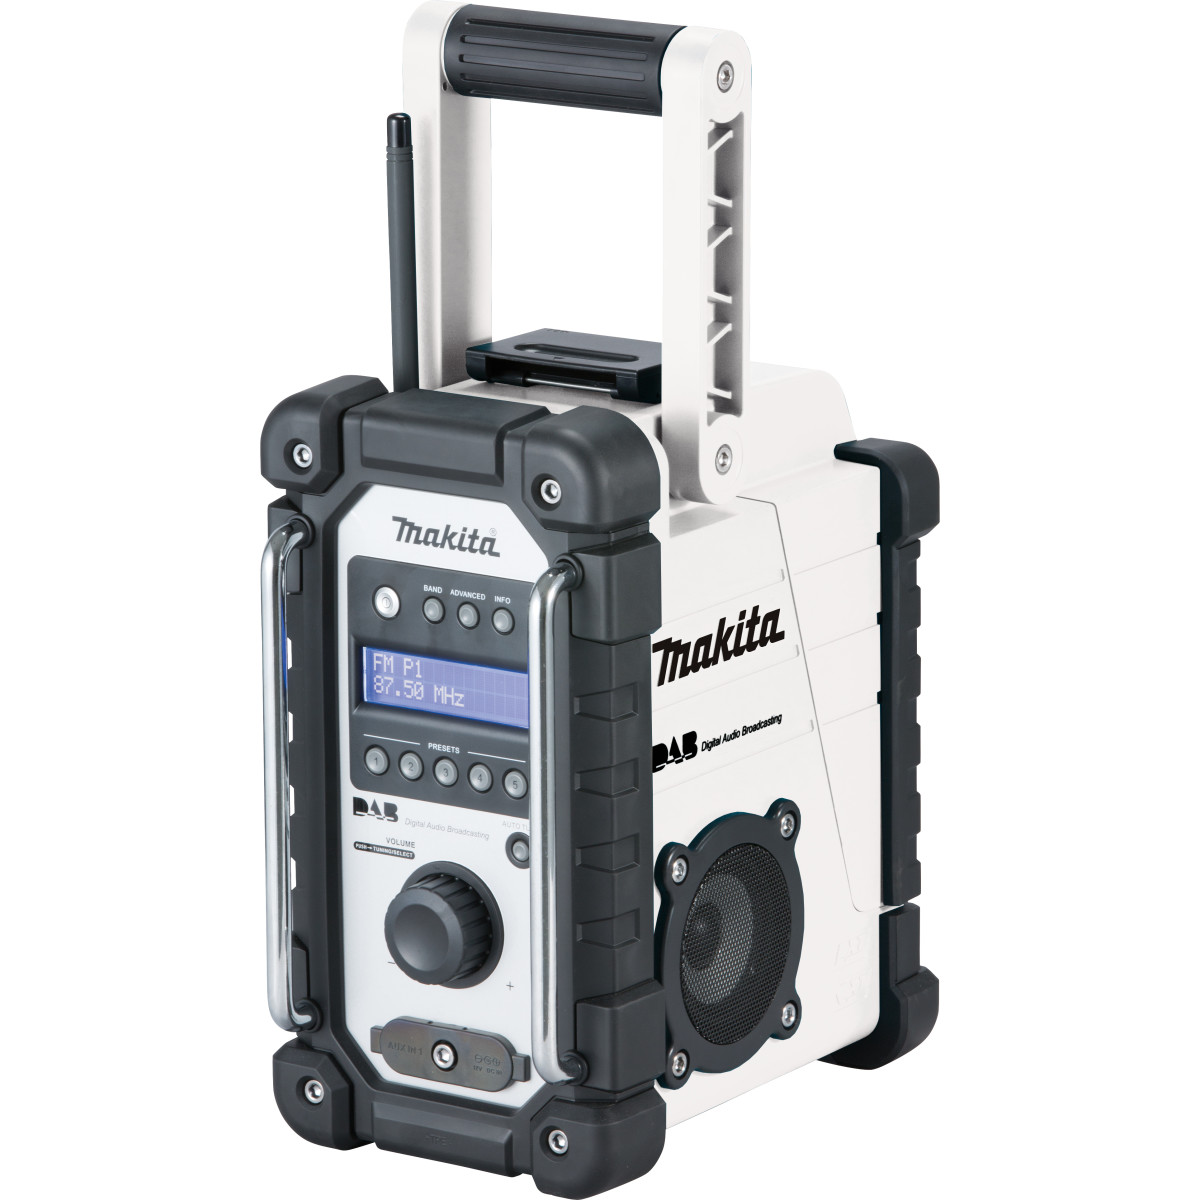 Makita body only radios